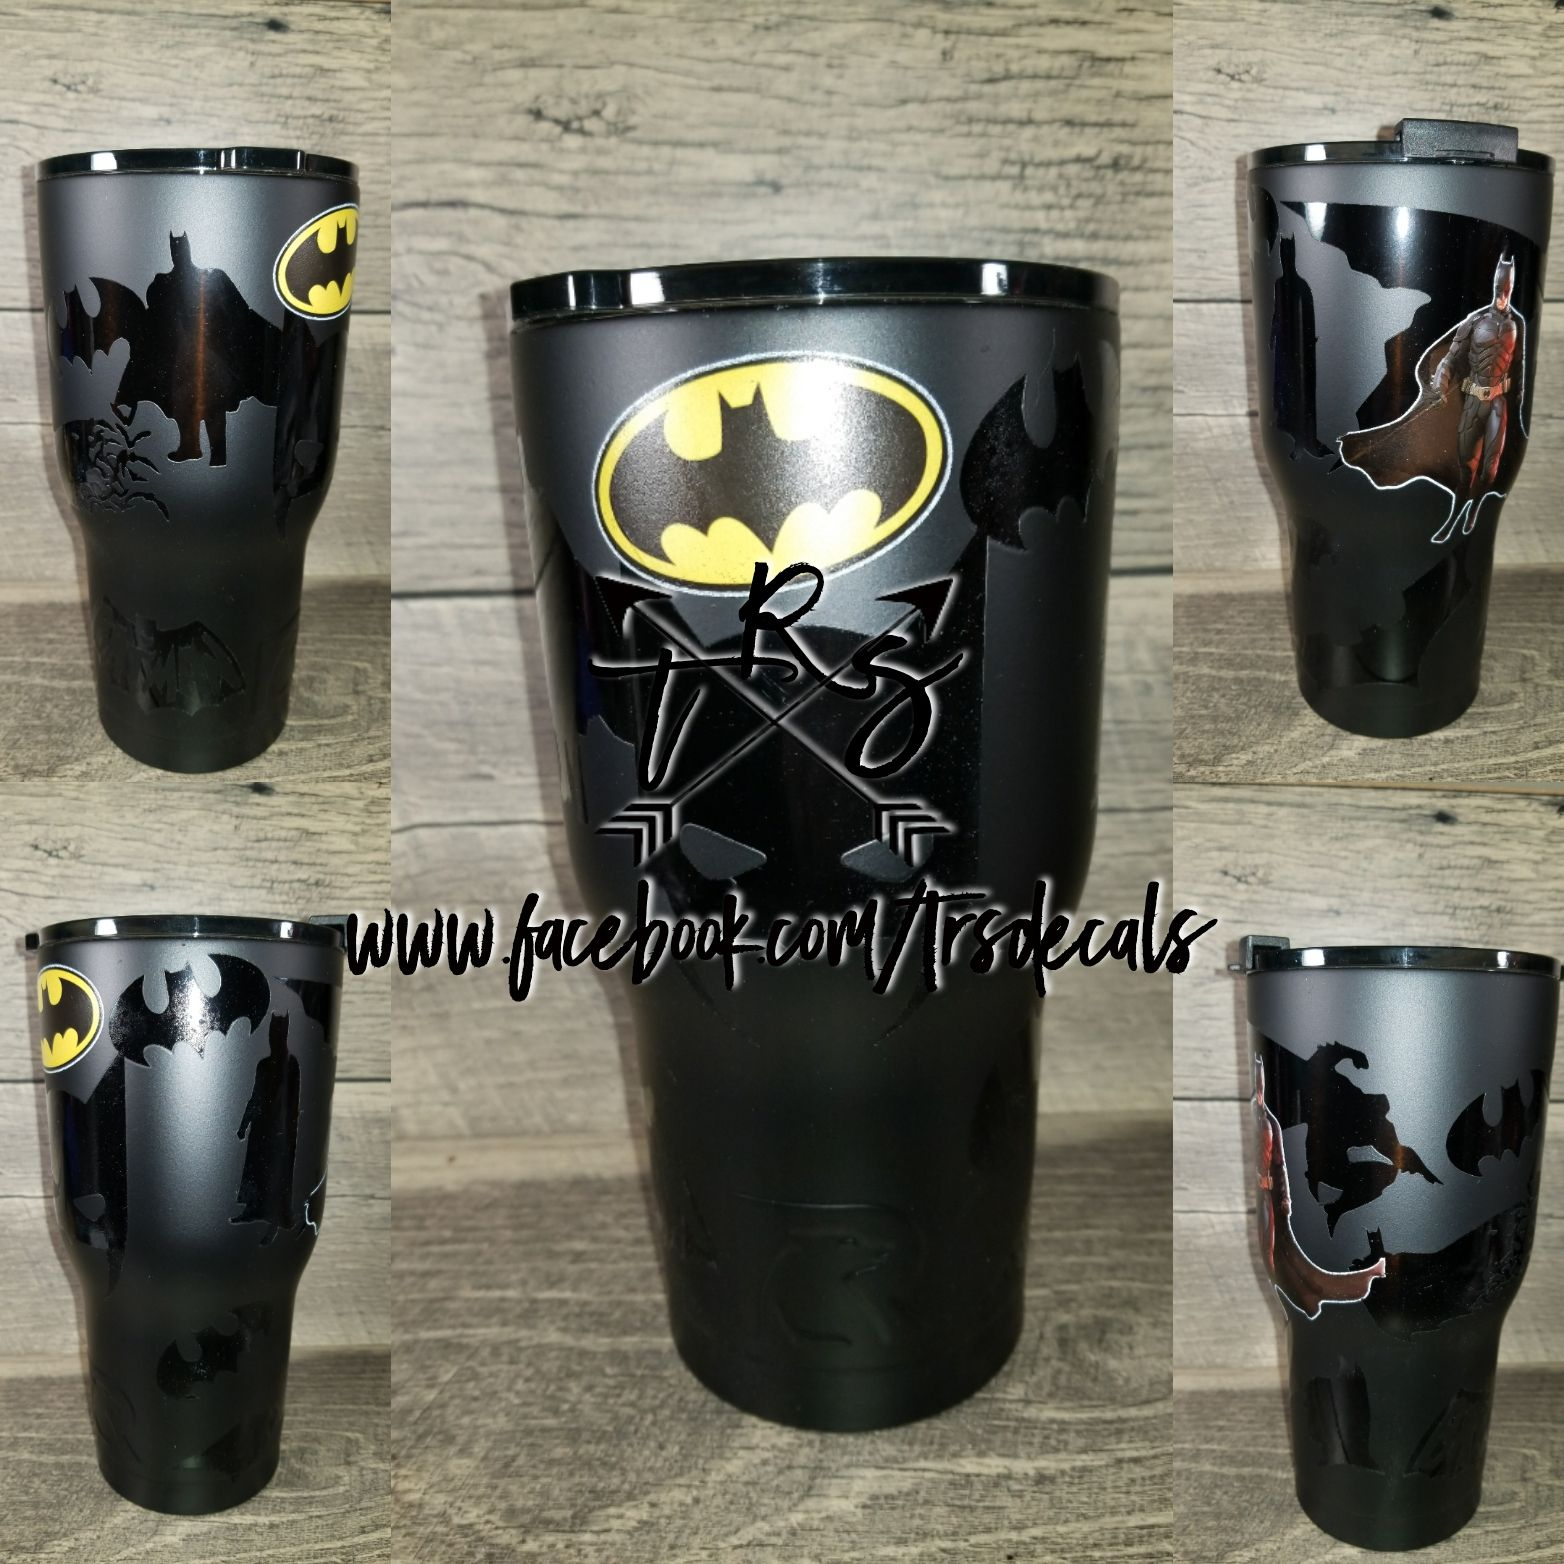 de4a6c00fdc Batman customized rtic yeti cup | rtic tumbler cups - Www.facebook ...